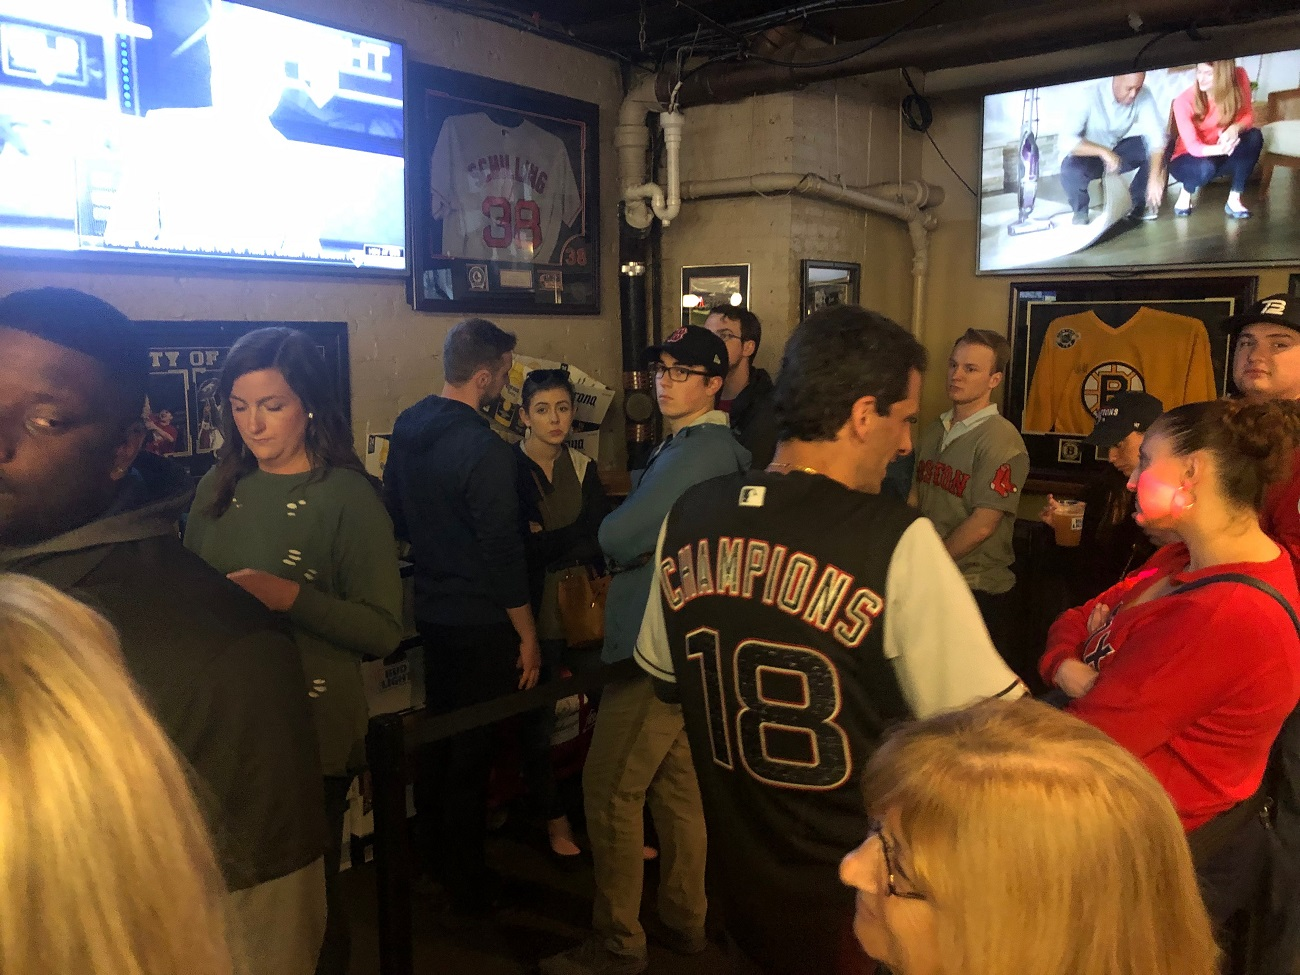 The Baseball Tavern in Boston